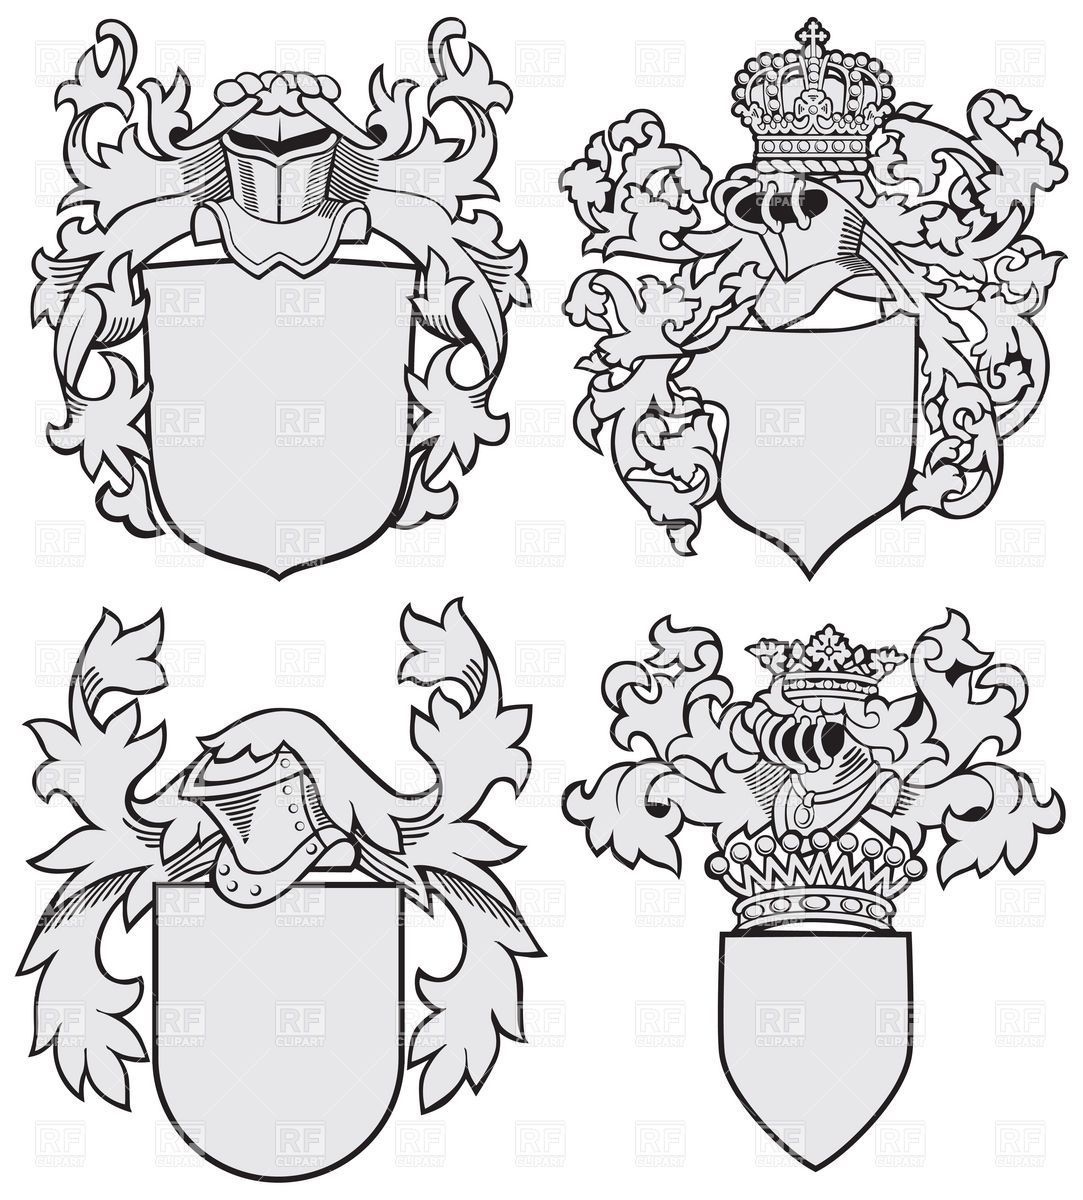 198347be39a1497591b0cd3d20561c96 coat of arms template lion coat of arms pinterest reunions on van signwriting template